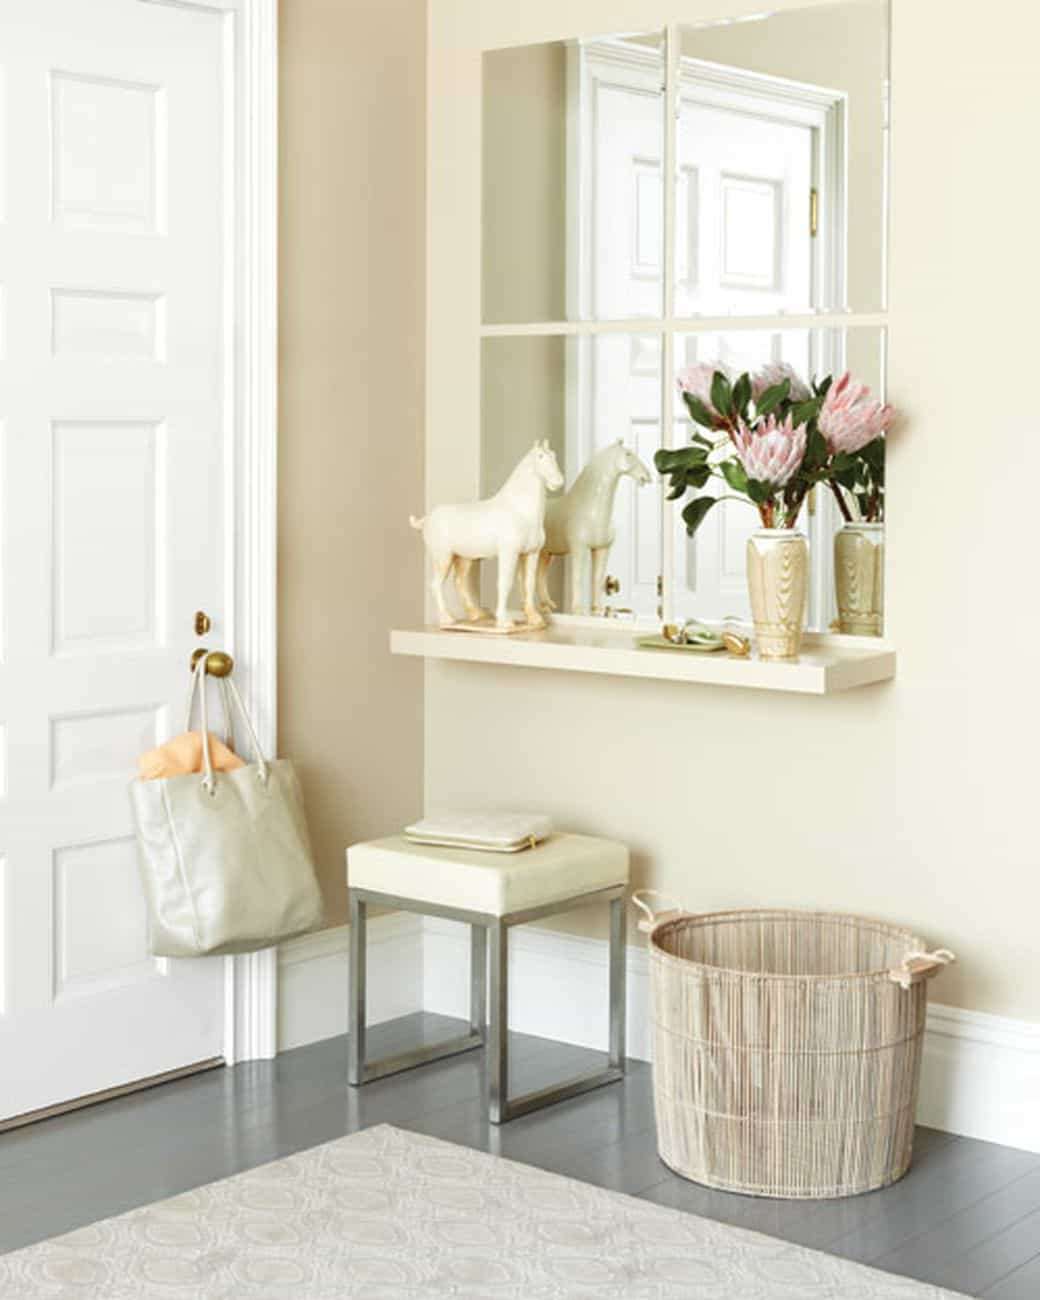 Preferred Entryway With Wall Mirrors And Shelf – Types Of Entryway Shelves Intended For Entry Wall Mirrors (View 12 of 20)